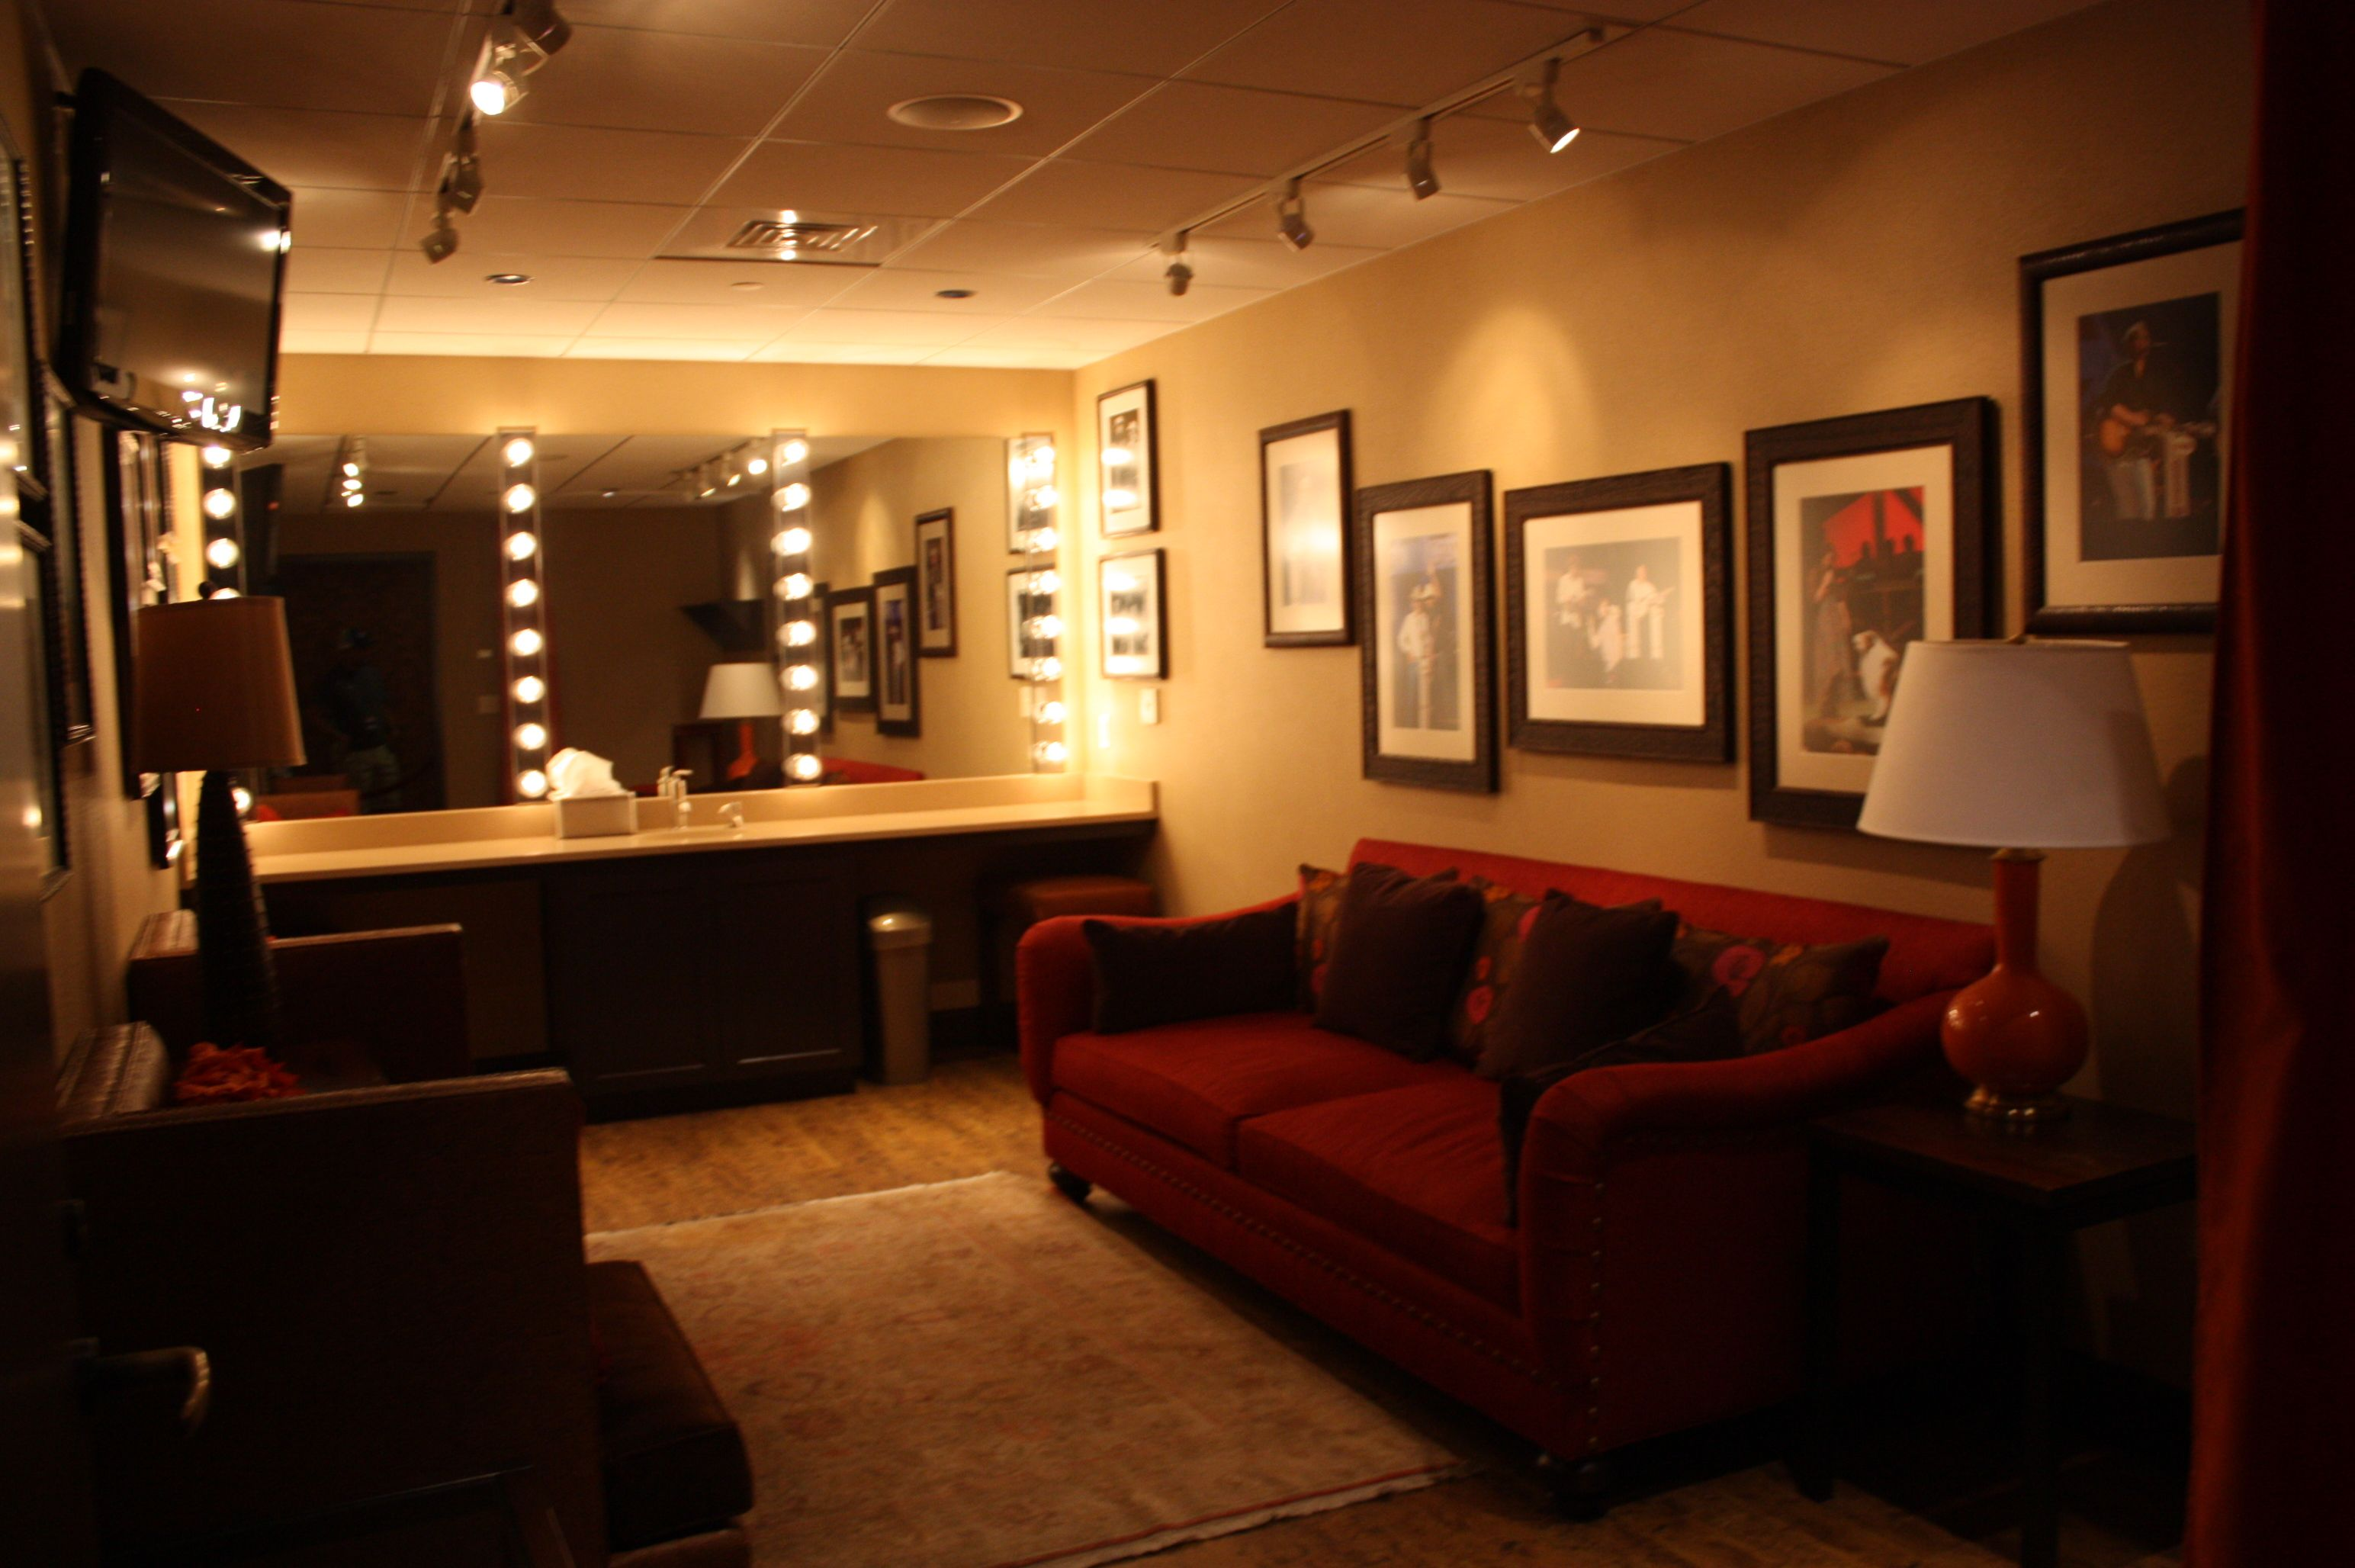 backstage dressing rooms - Bing Images | GCC Green Room | Pinterest ...